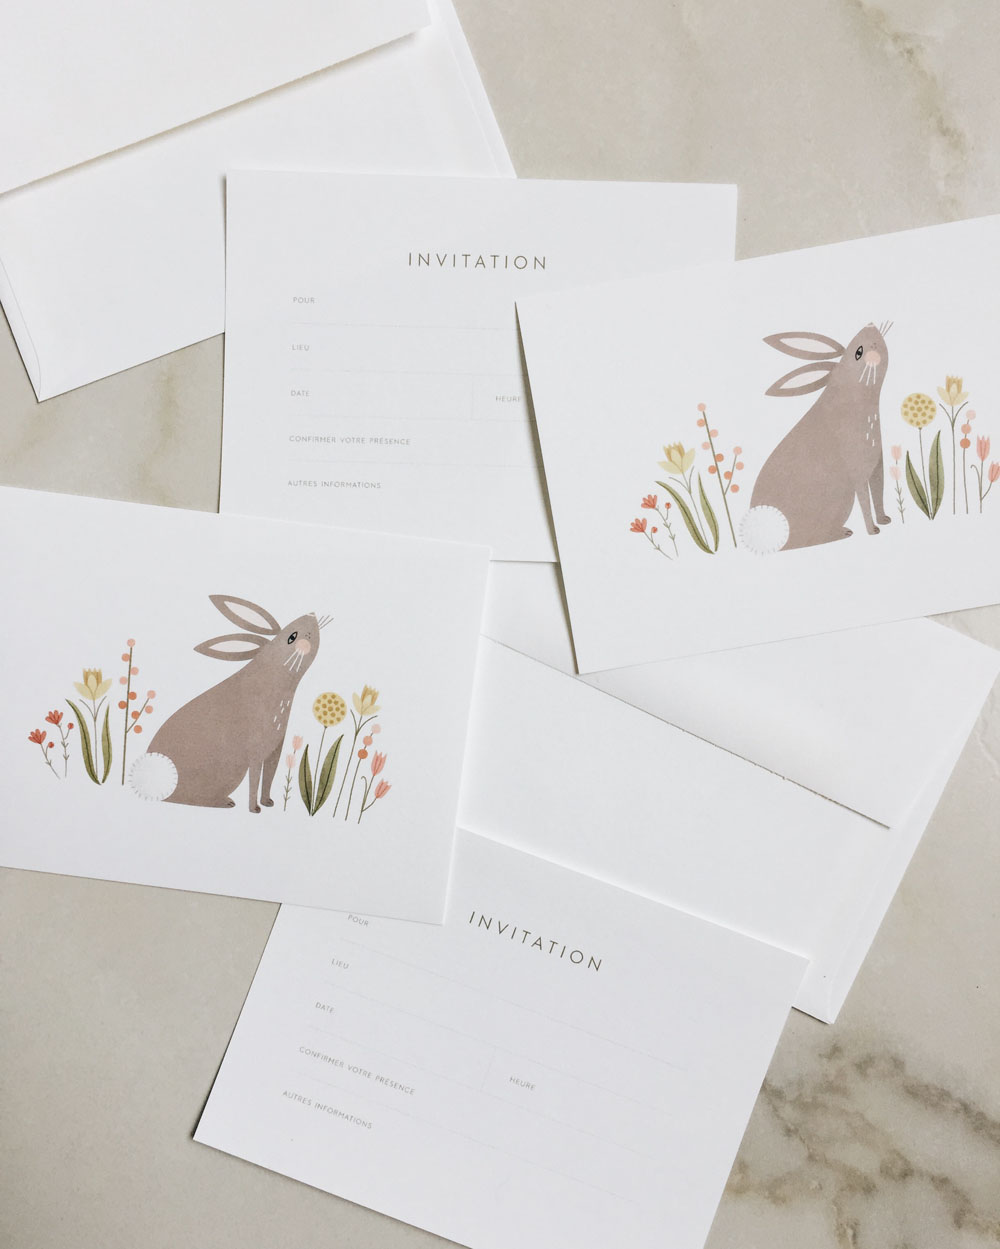 Invitation illustration by Clare Owen for Petite Lou & Co.